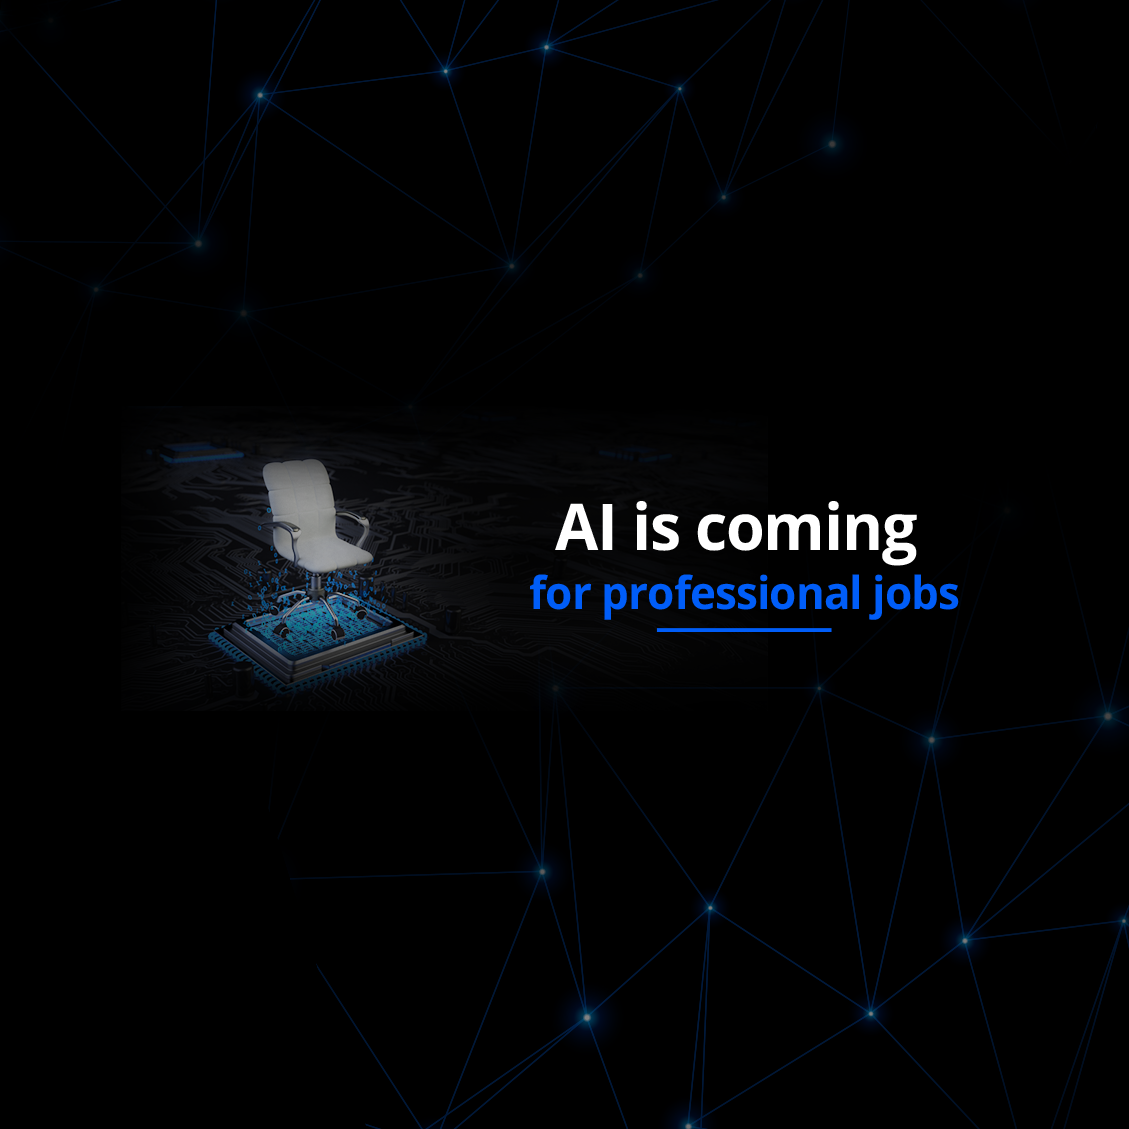 AI is coming for professional jobs